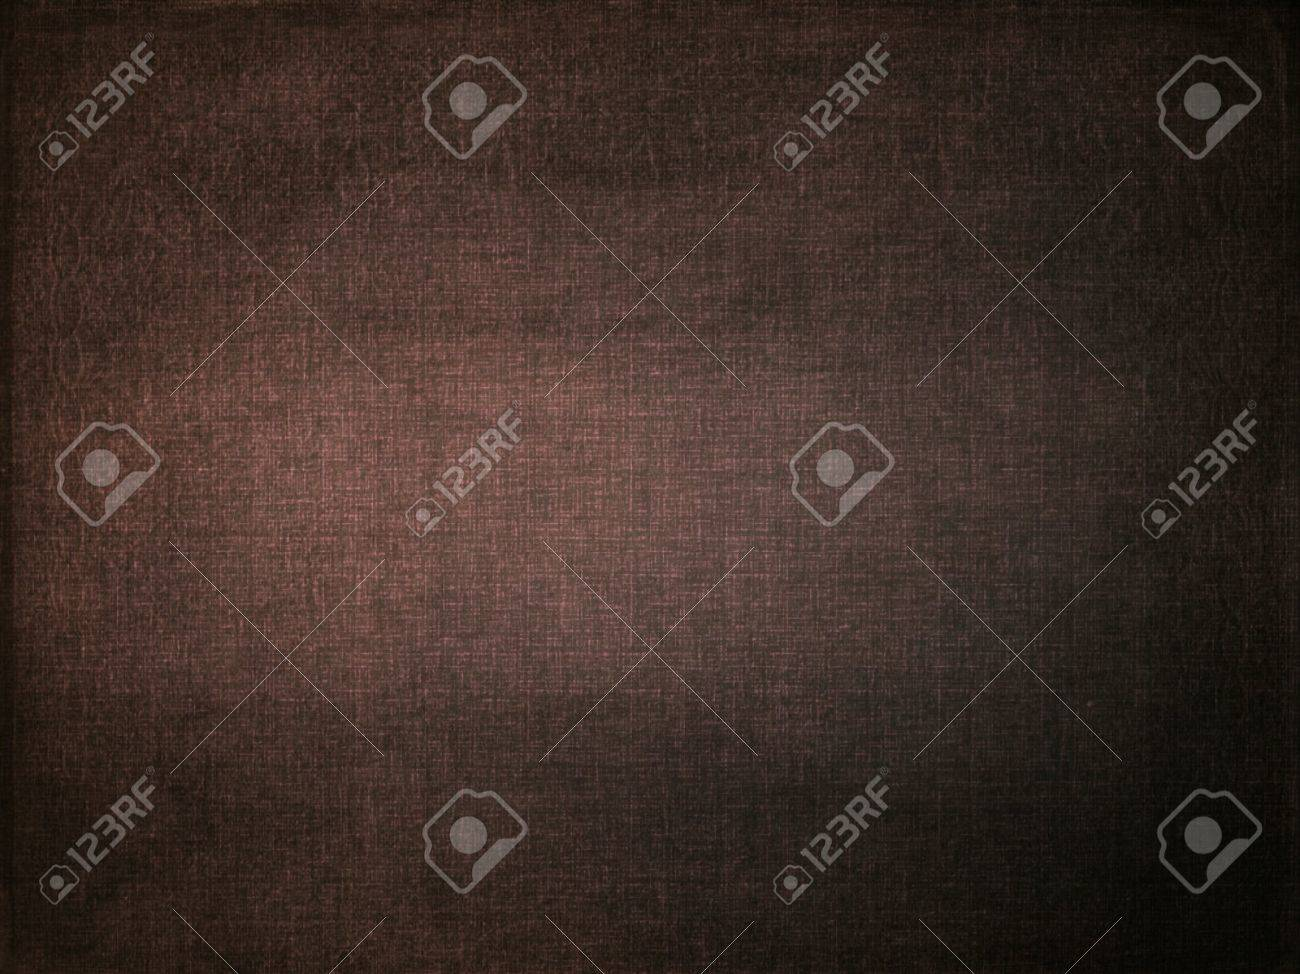 Brown Texture Abstract Border Wallpaper Stock Photo Picture And